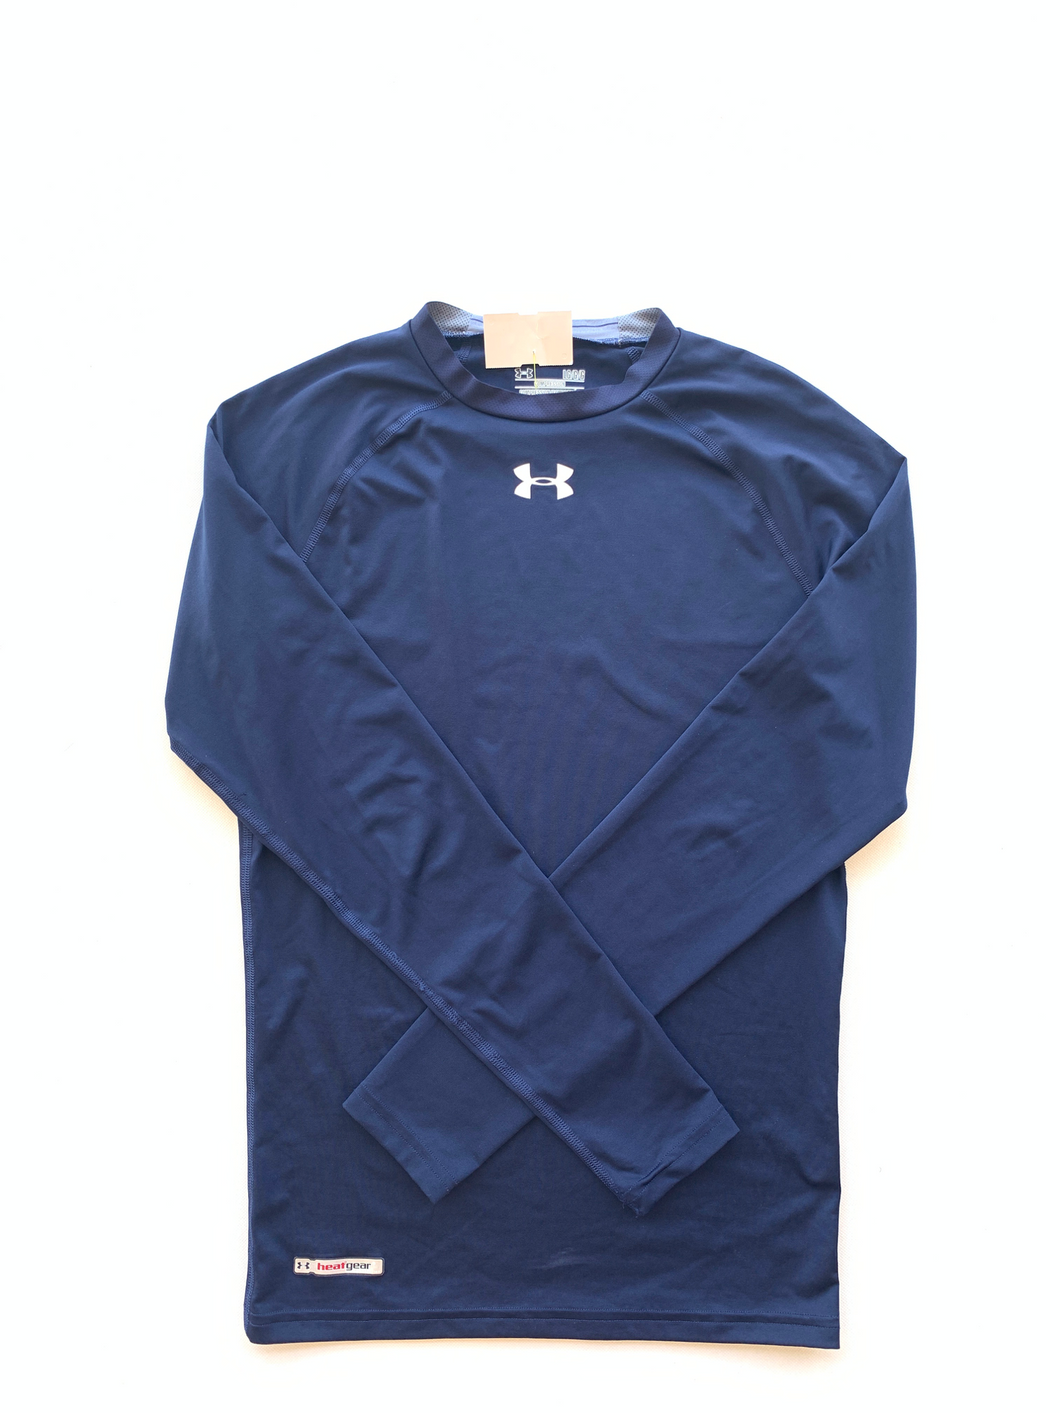 Under Armour Athletic Top Size Large